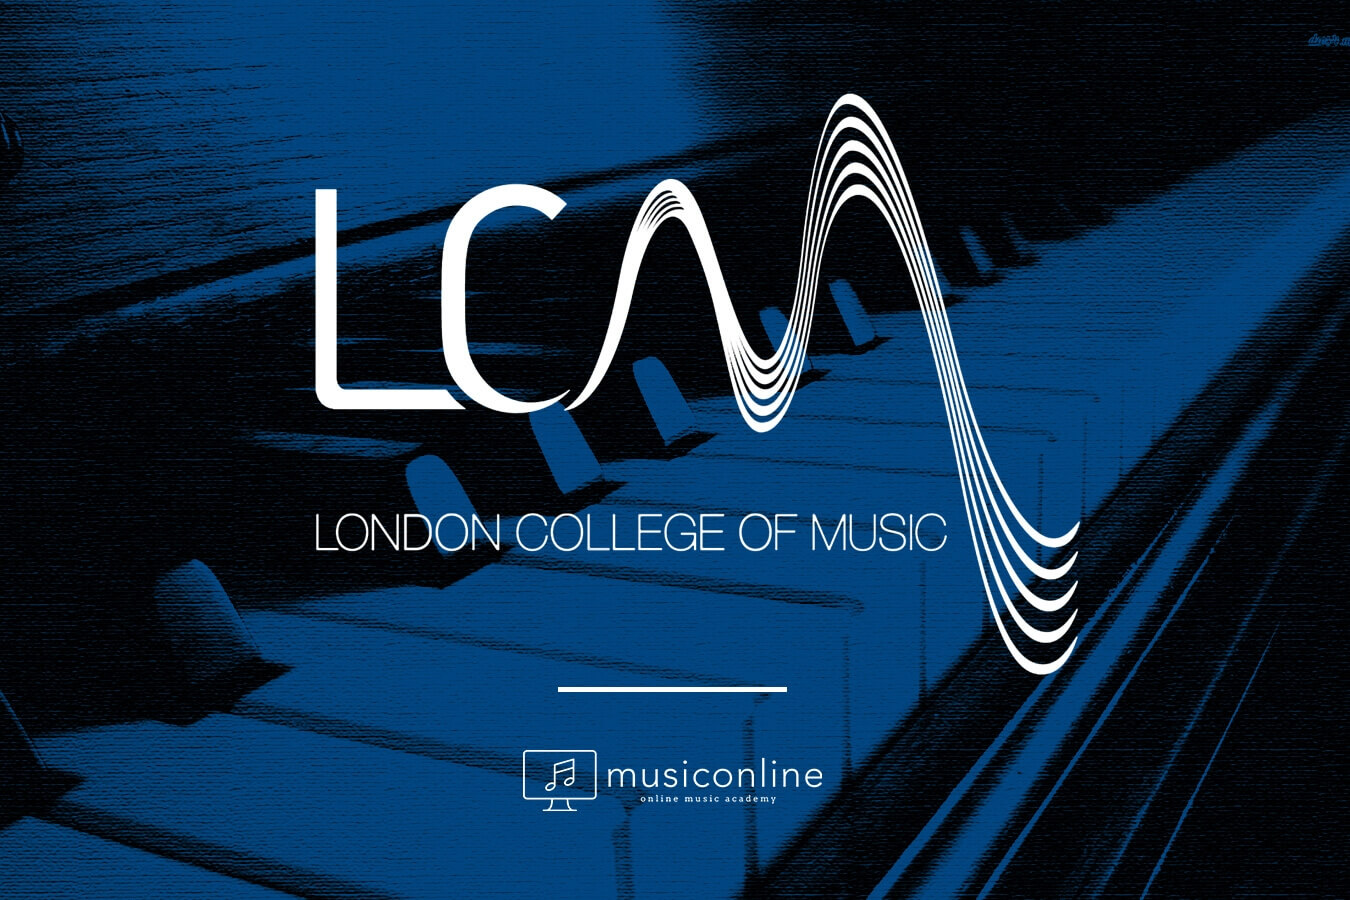 London College of Music (LCM) Nedir?